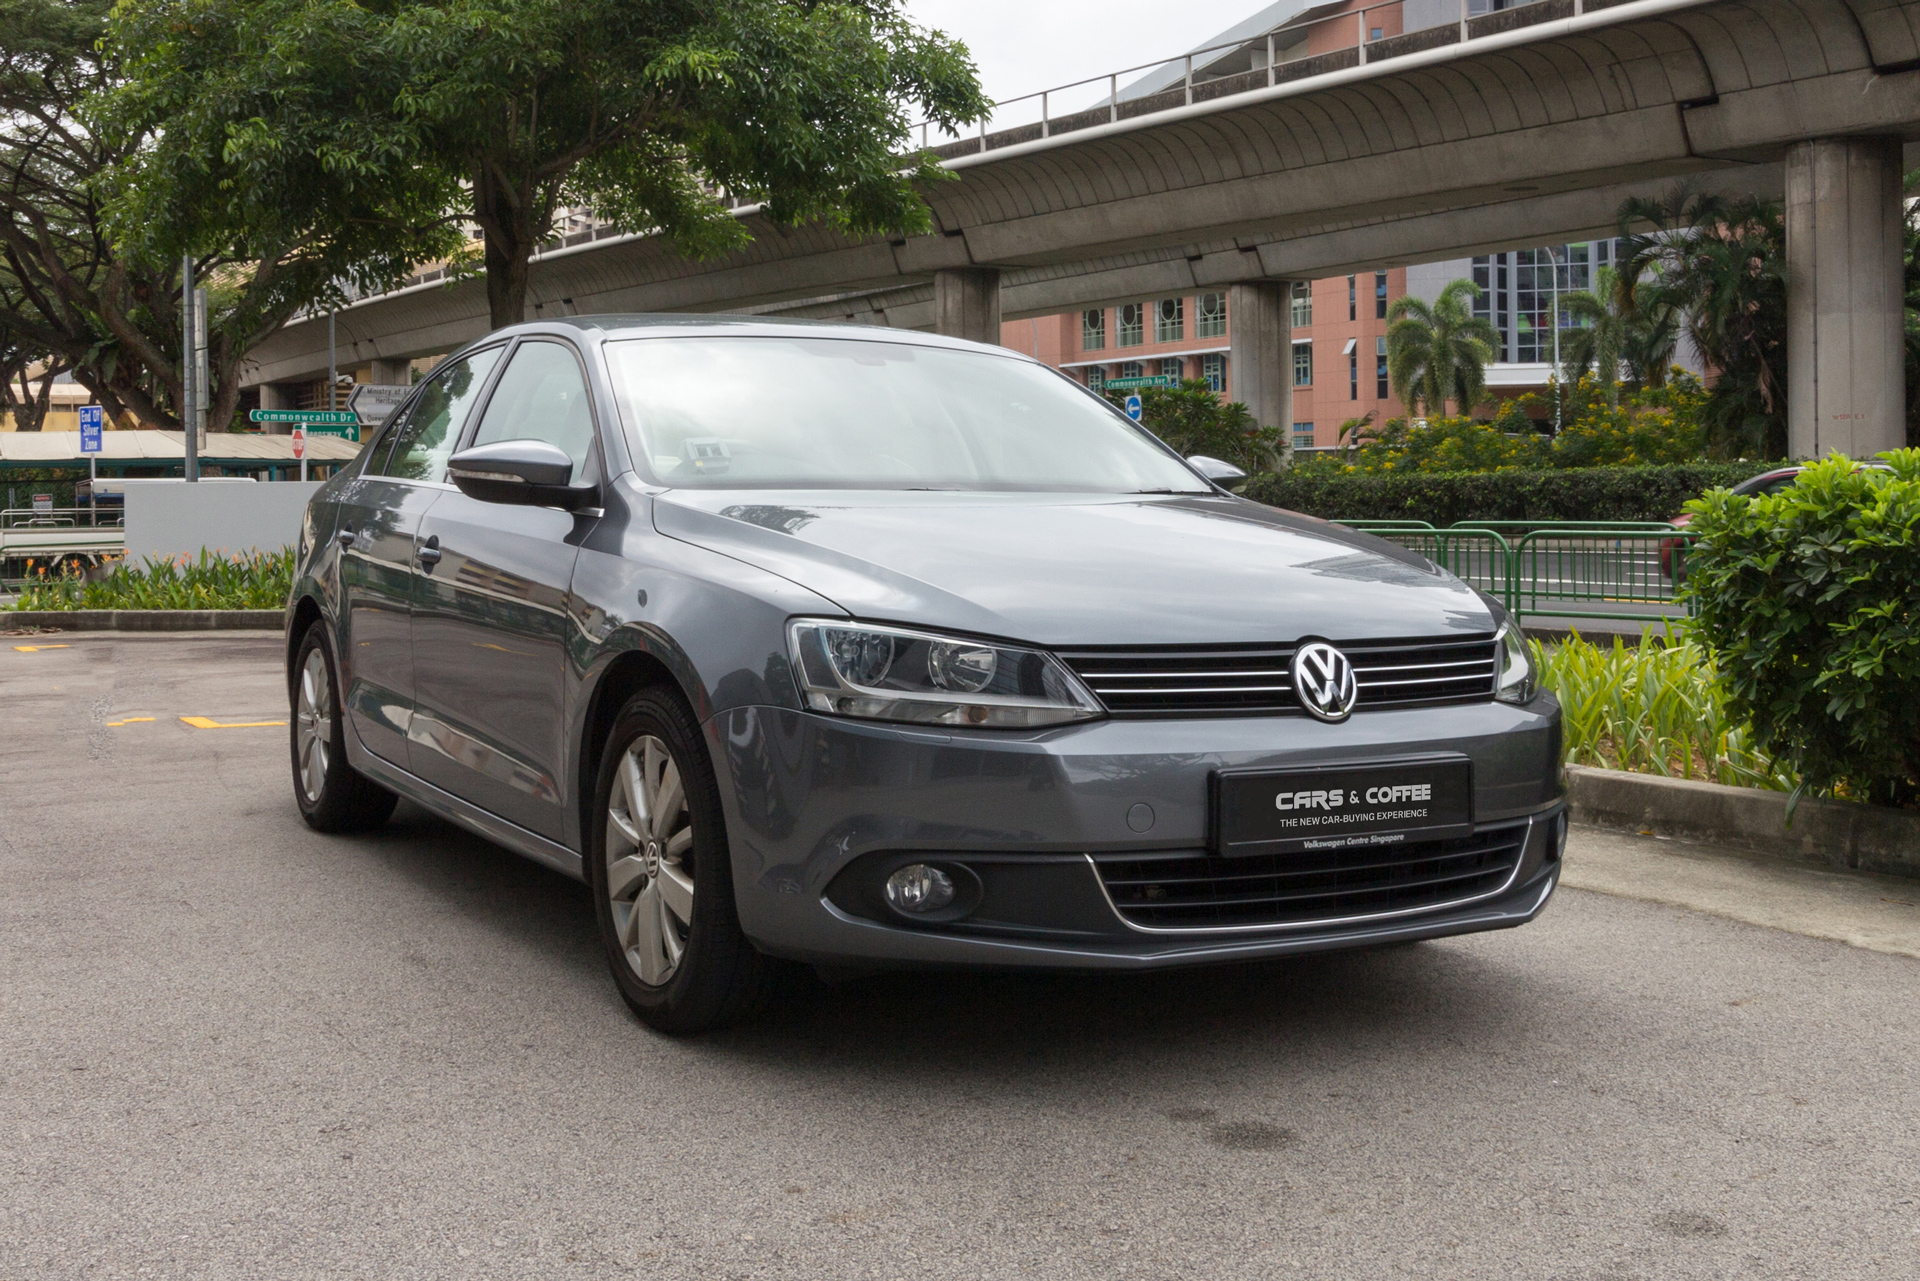 Certified Pre-Owned Volkswagen Jetta GP 1.4A TSI | Cars and Coffee Singapore